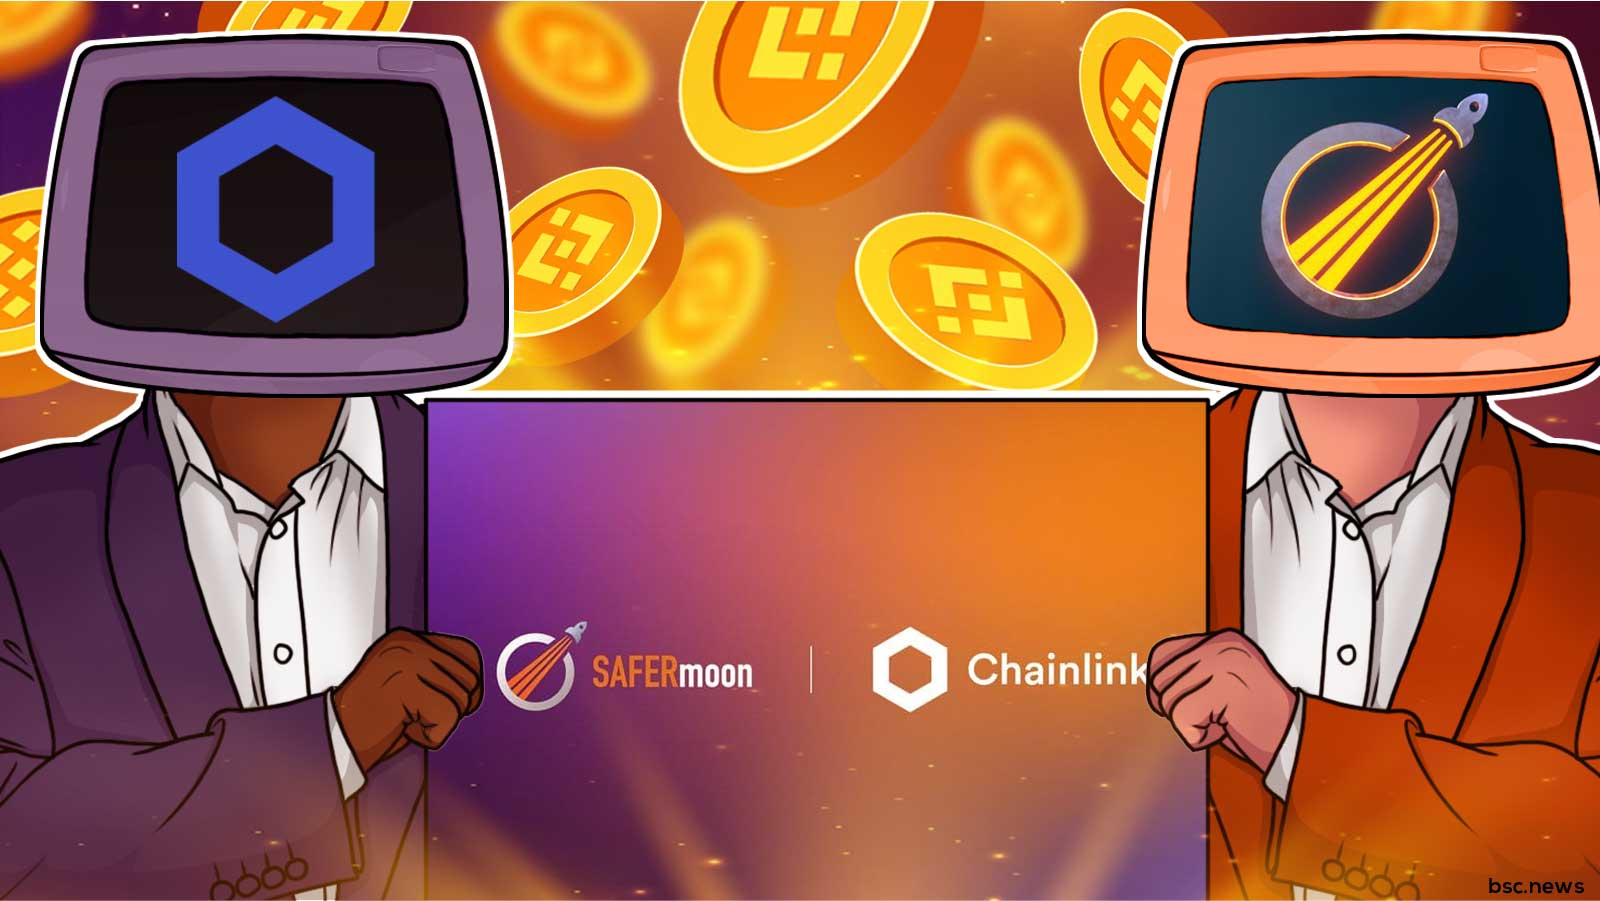 SAFERmoon Integrates Chainlink VRF to Ensure Fairness in the SAFERsummer Event